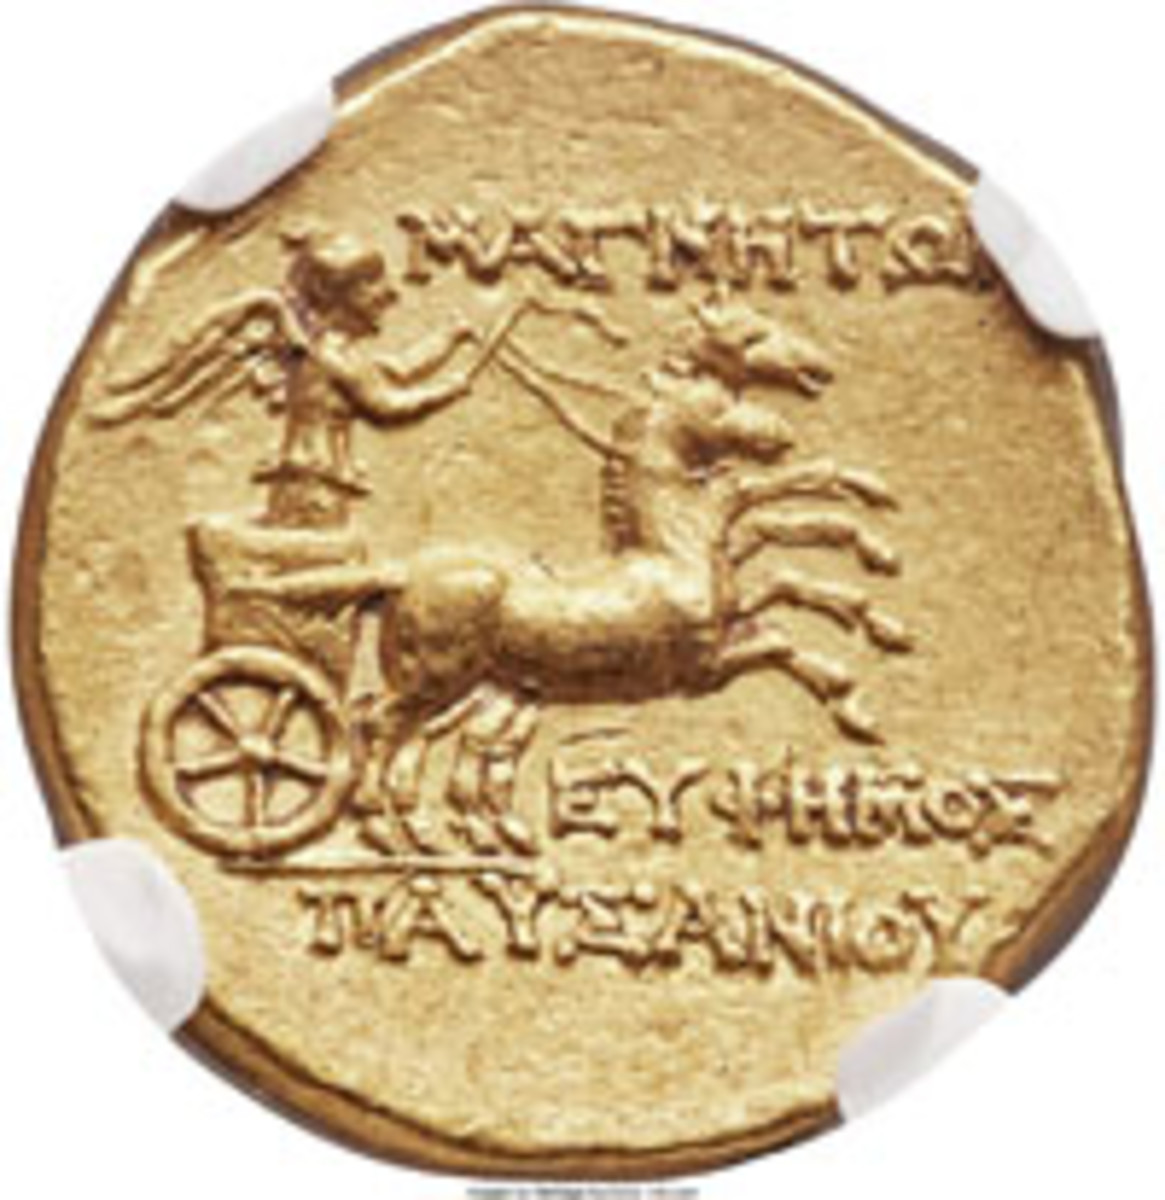 Reverse of the previously unrecorded, 19 mm, 8.46 g, Ionian gold stater from Magnesia ad Meandrum c. 155-145 B.C.E. It took $18,000 graded NGC Choice AU 5/5 - 4/5. (Image courtesy and © www.ha.com)